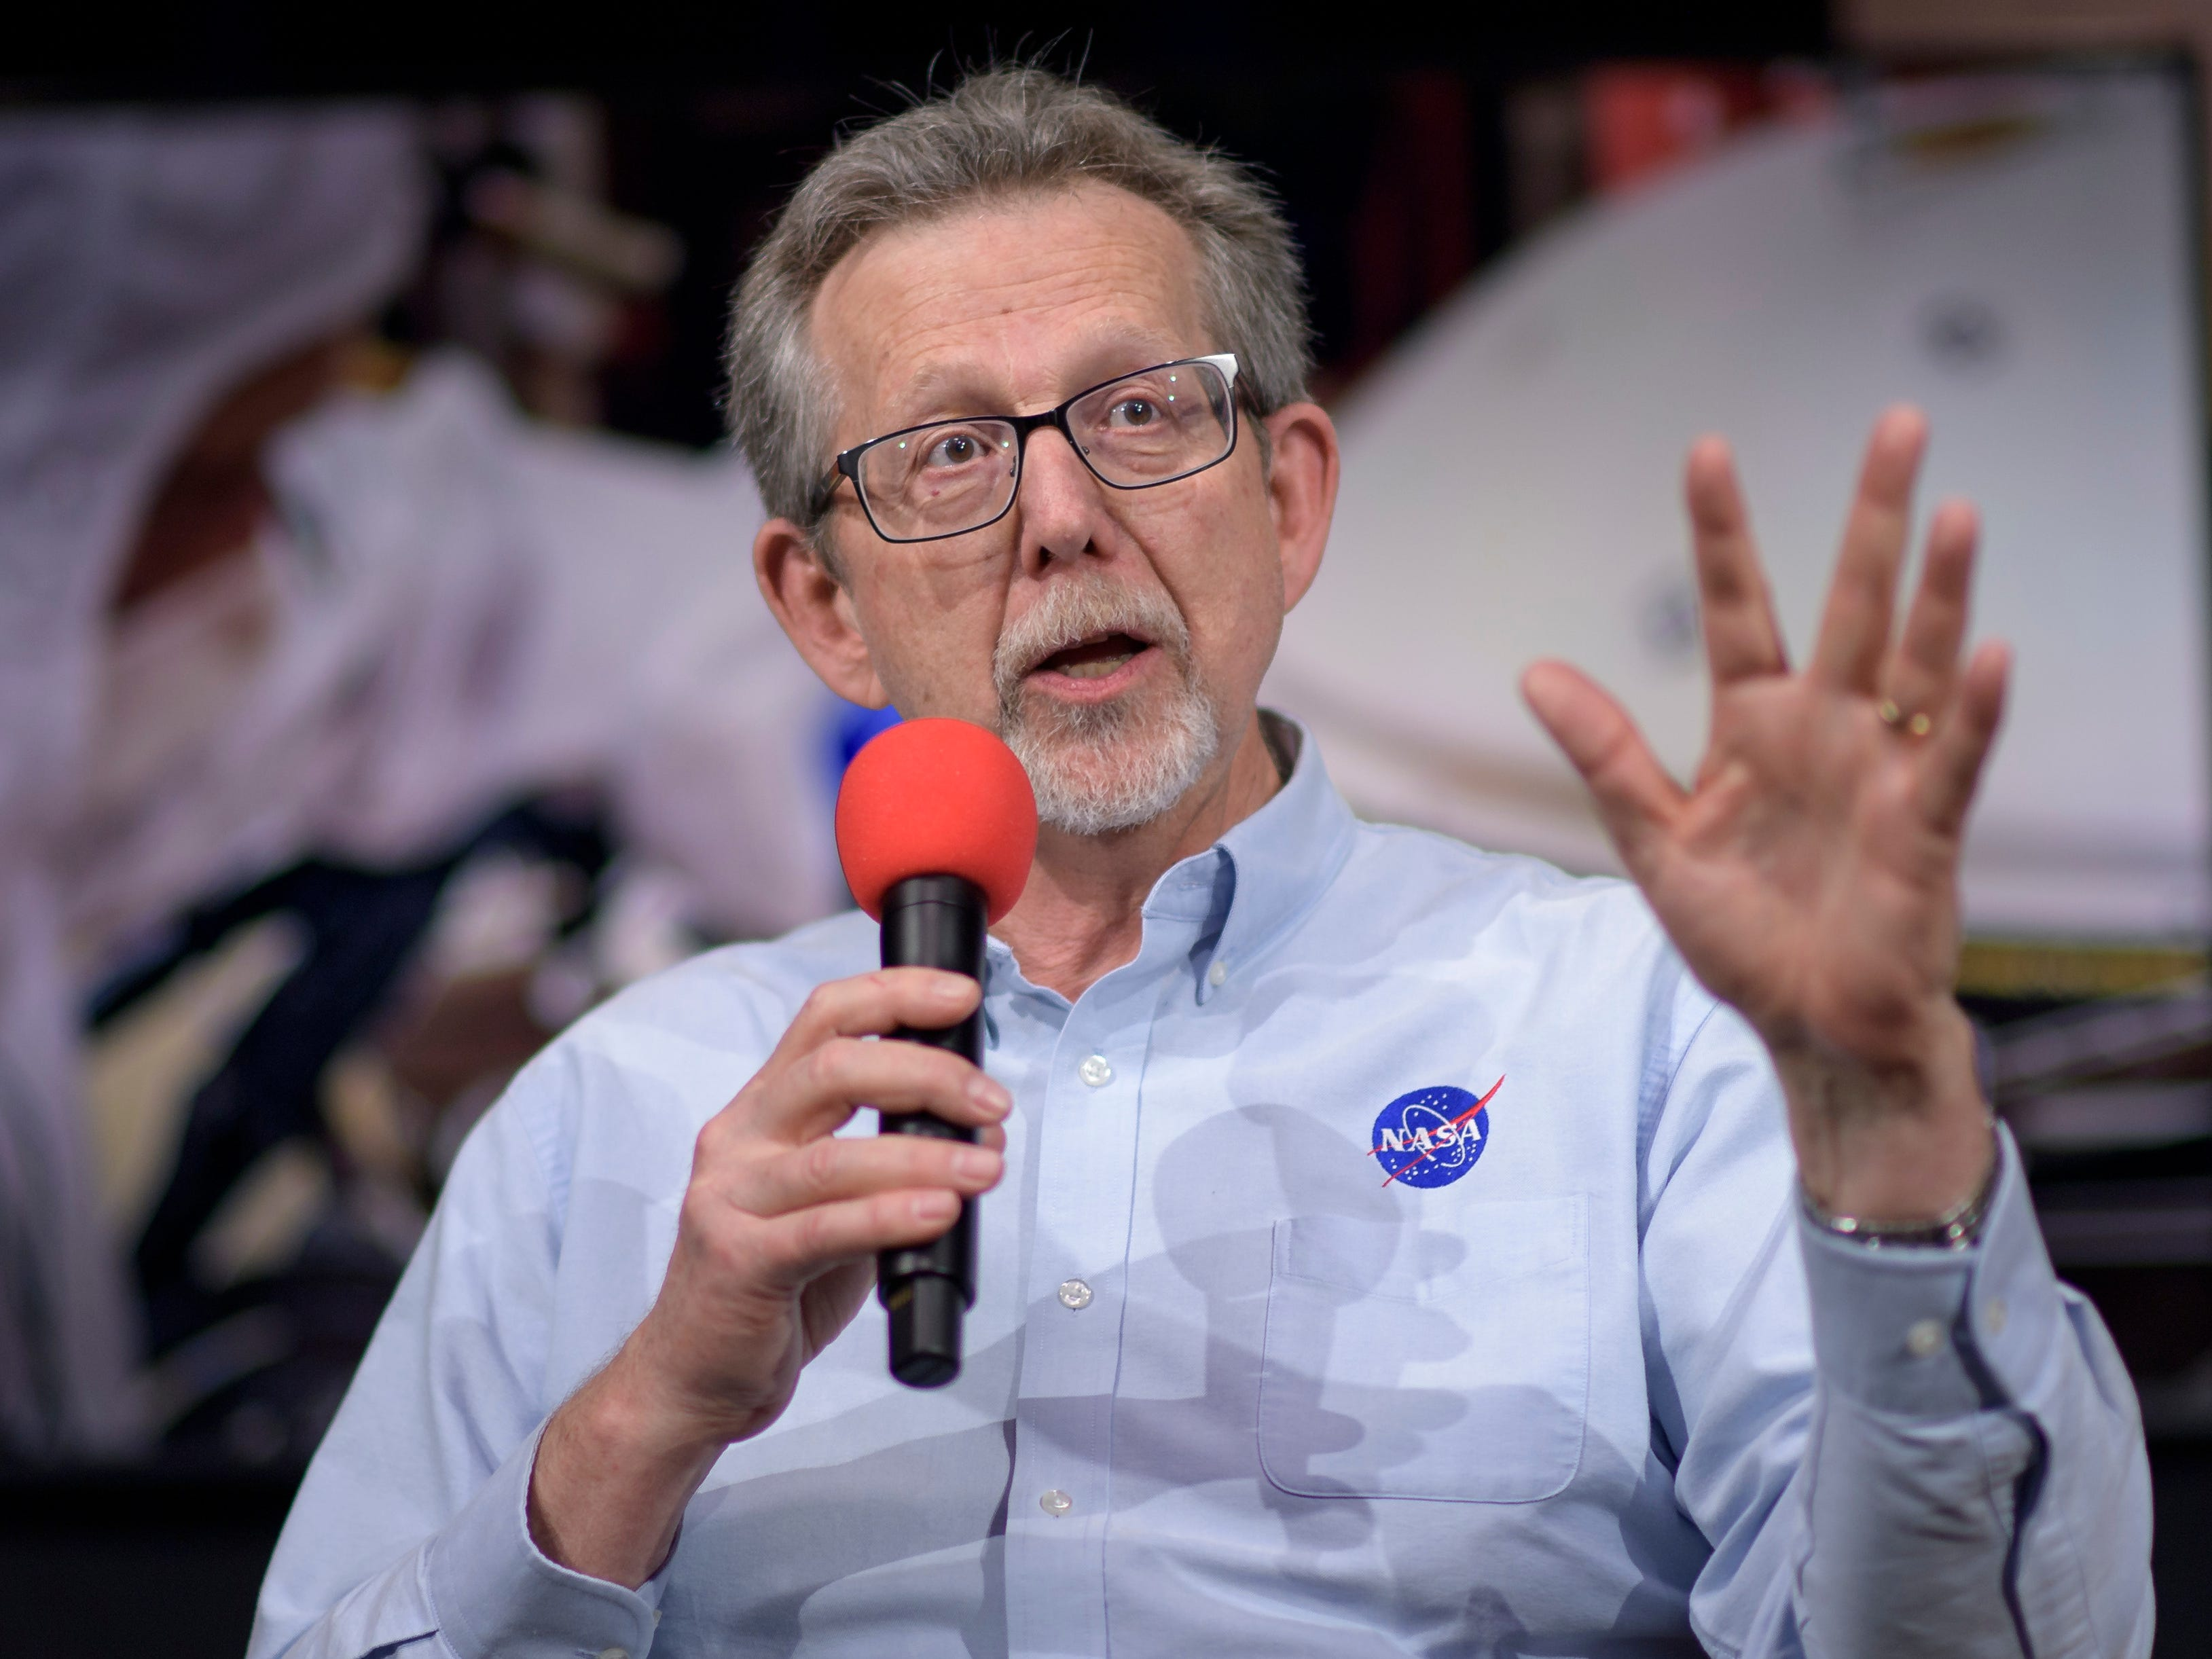 NASA chief scientist Jim Green talks about Mars InSight during a social media briefing Sunday, Nov. 25, 2018, at NASA's Jet Propulsion Laboratory in Pasadena, Calif.